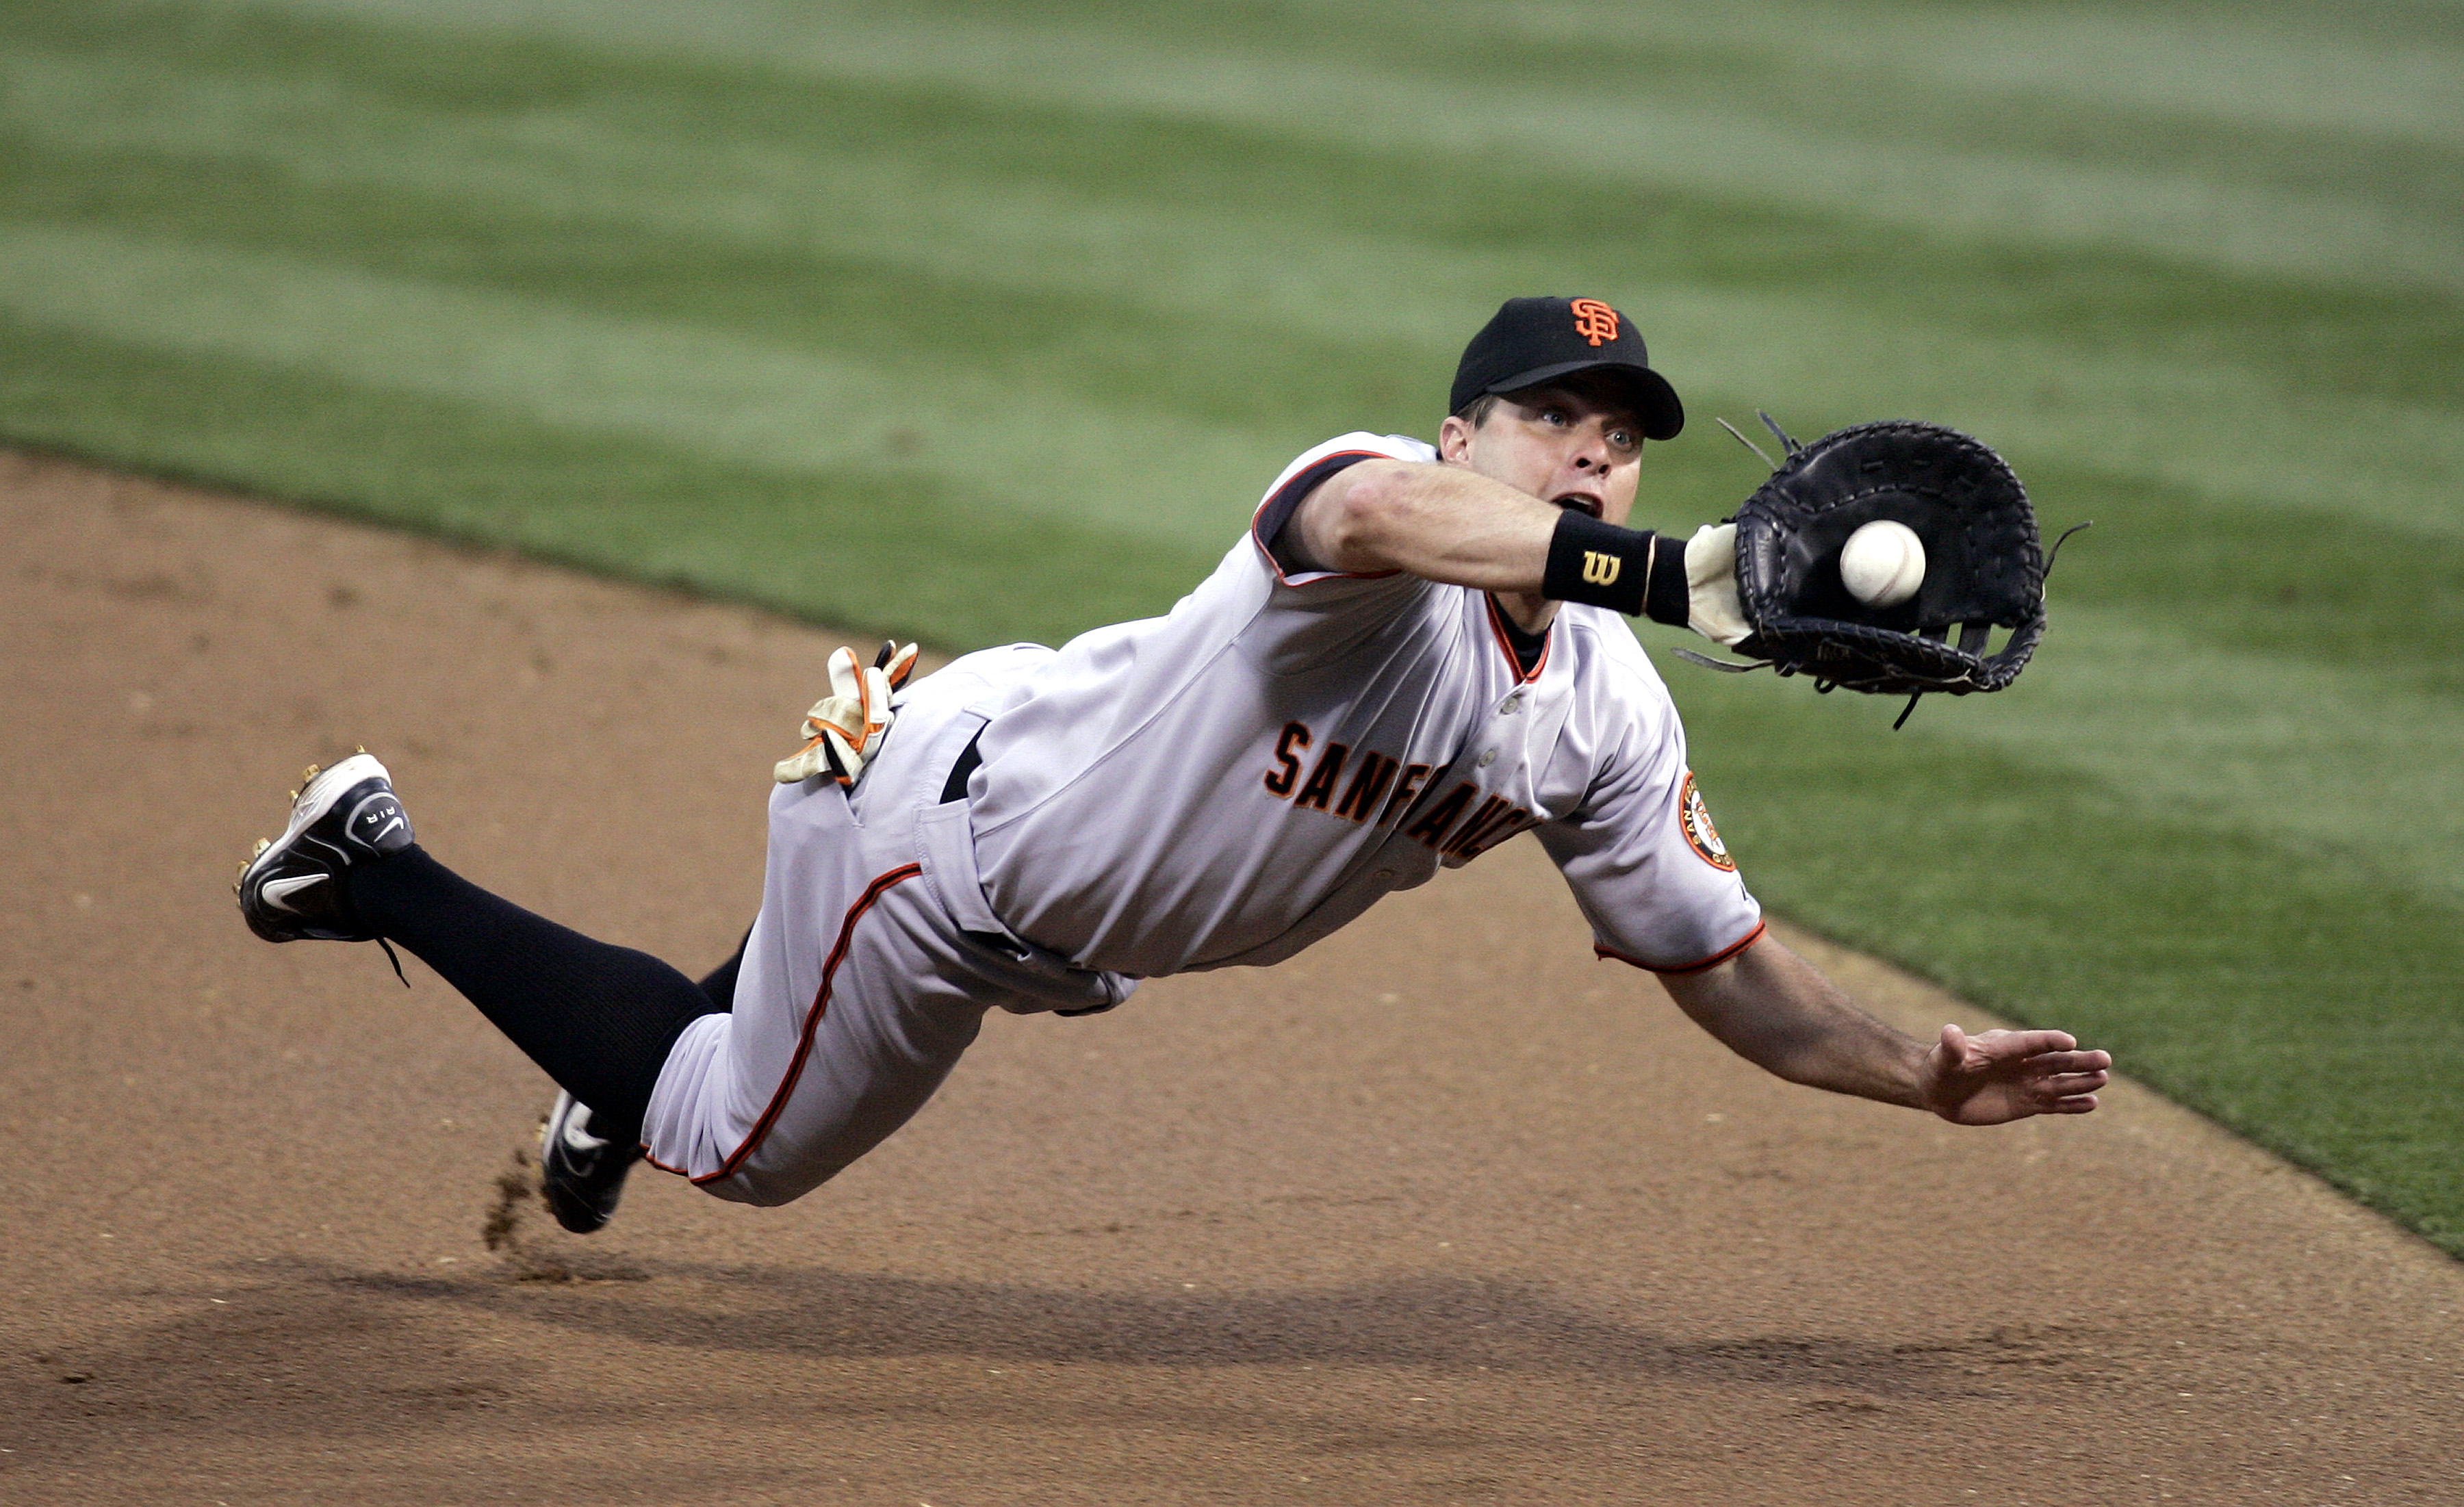 SAN DIEGO - JULY 1:  First baseman J.T. Snow #6 of the San Francisco Giants tries to catch a line drive hit by Xavier Nady #22 of the San Diego Padres in the first inning on July 1, 2005 at PETCO Park in San Diego, California.  (Photo by Donald Miralle/Ge